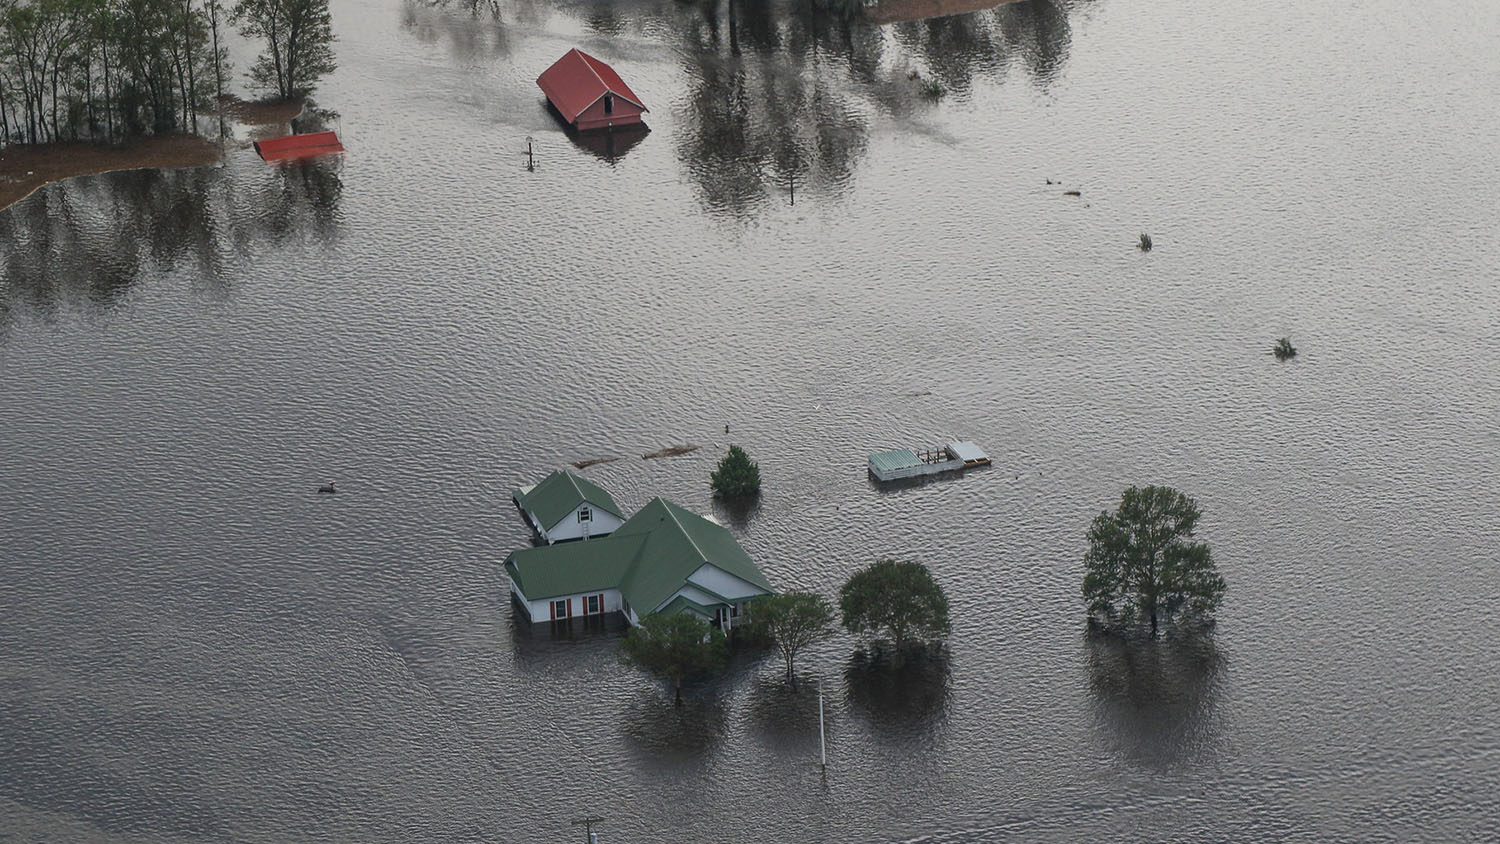 aerial view of a farmhouse, vehicles and outbuildings during a flood. all of the structures are submerged, leaving only roofs exposed